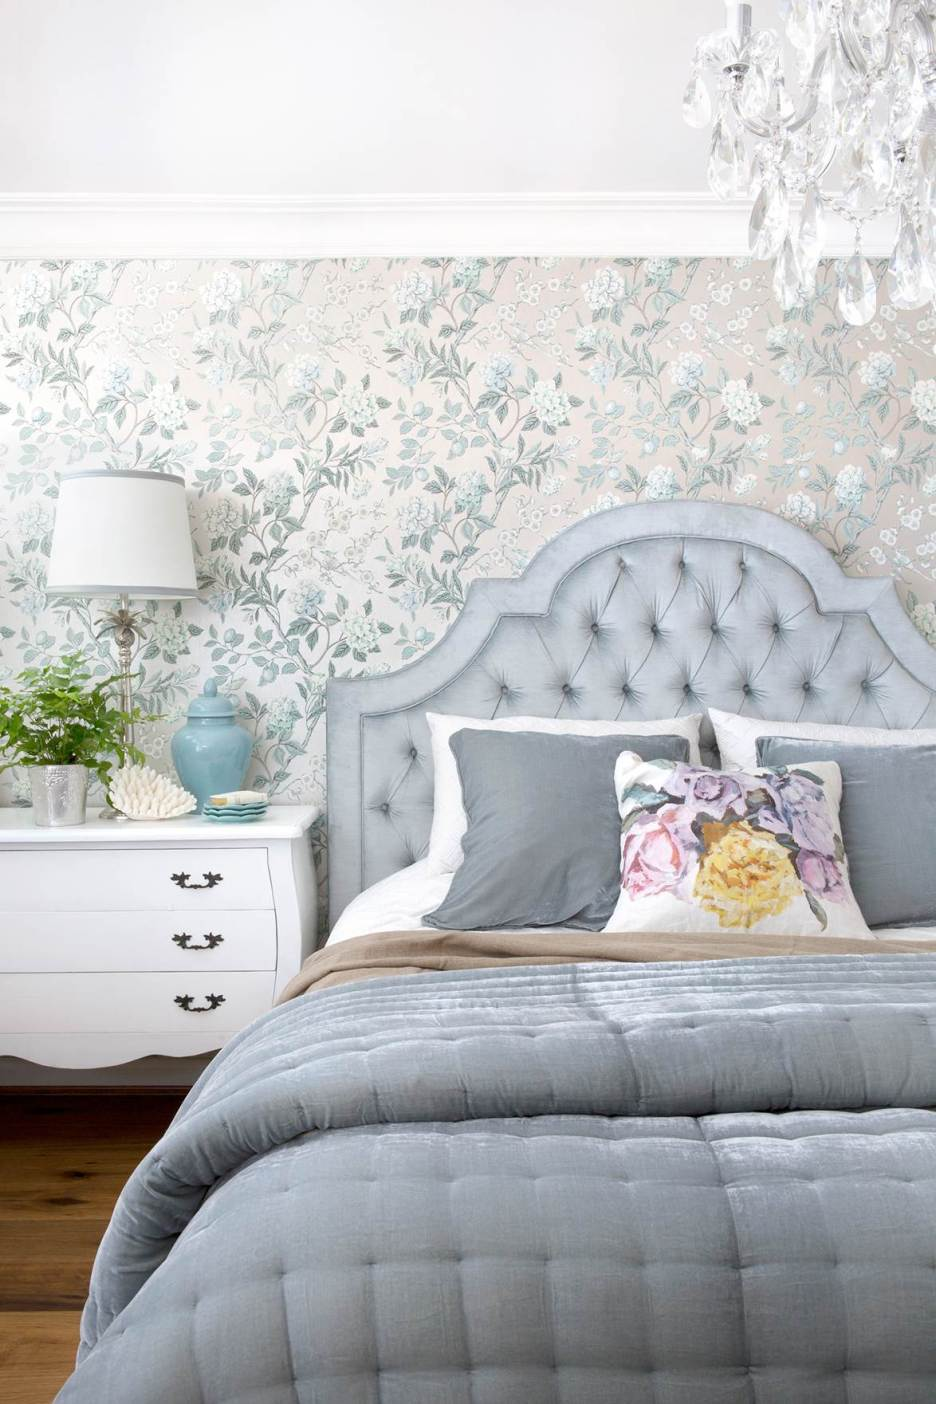 Homes to Love Australia designer Natalee bedroom pale blue tufted headboard not outdated trends